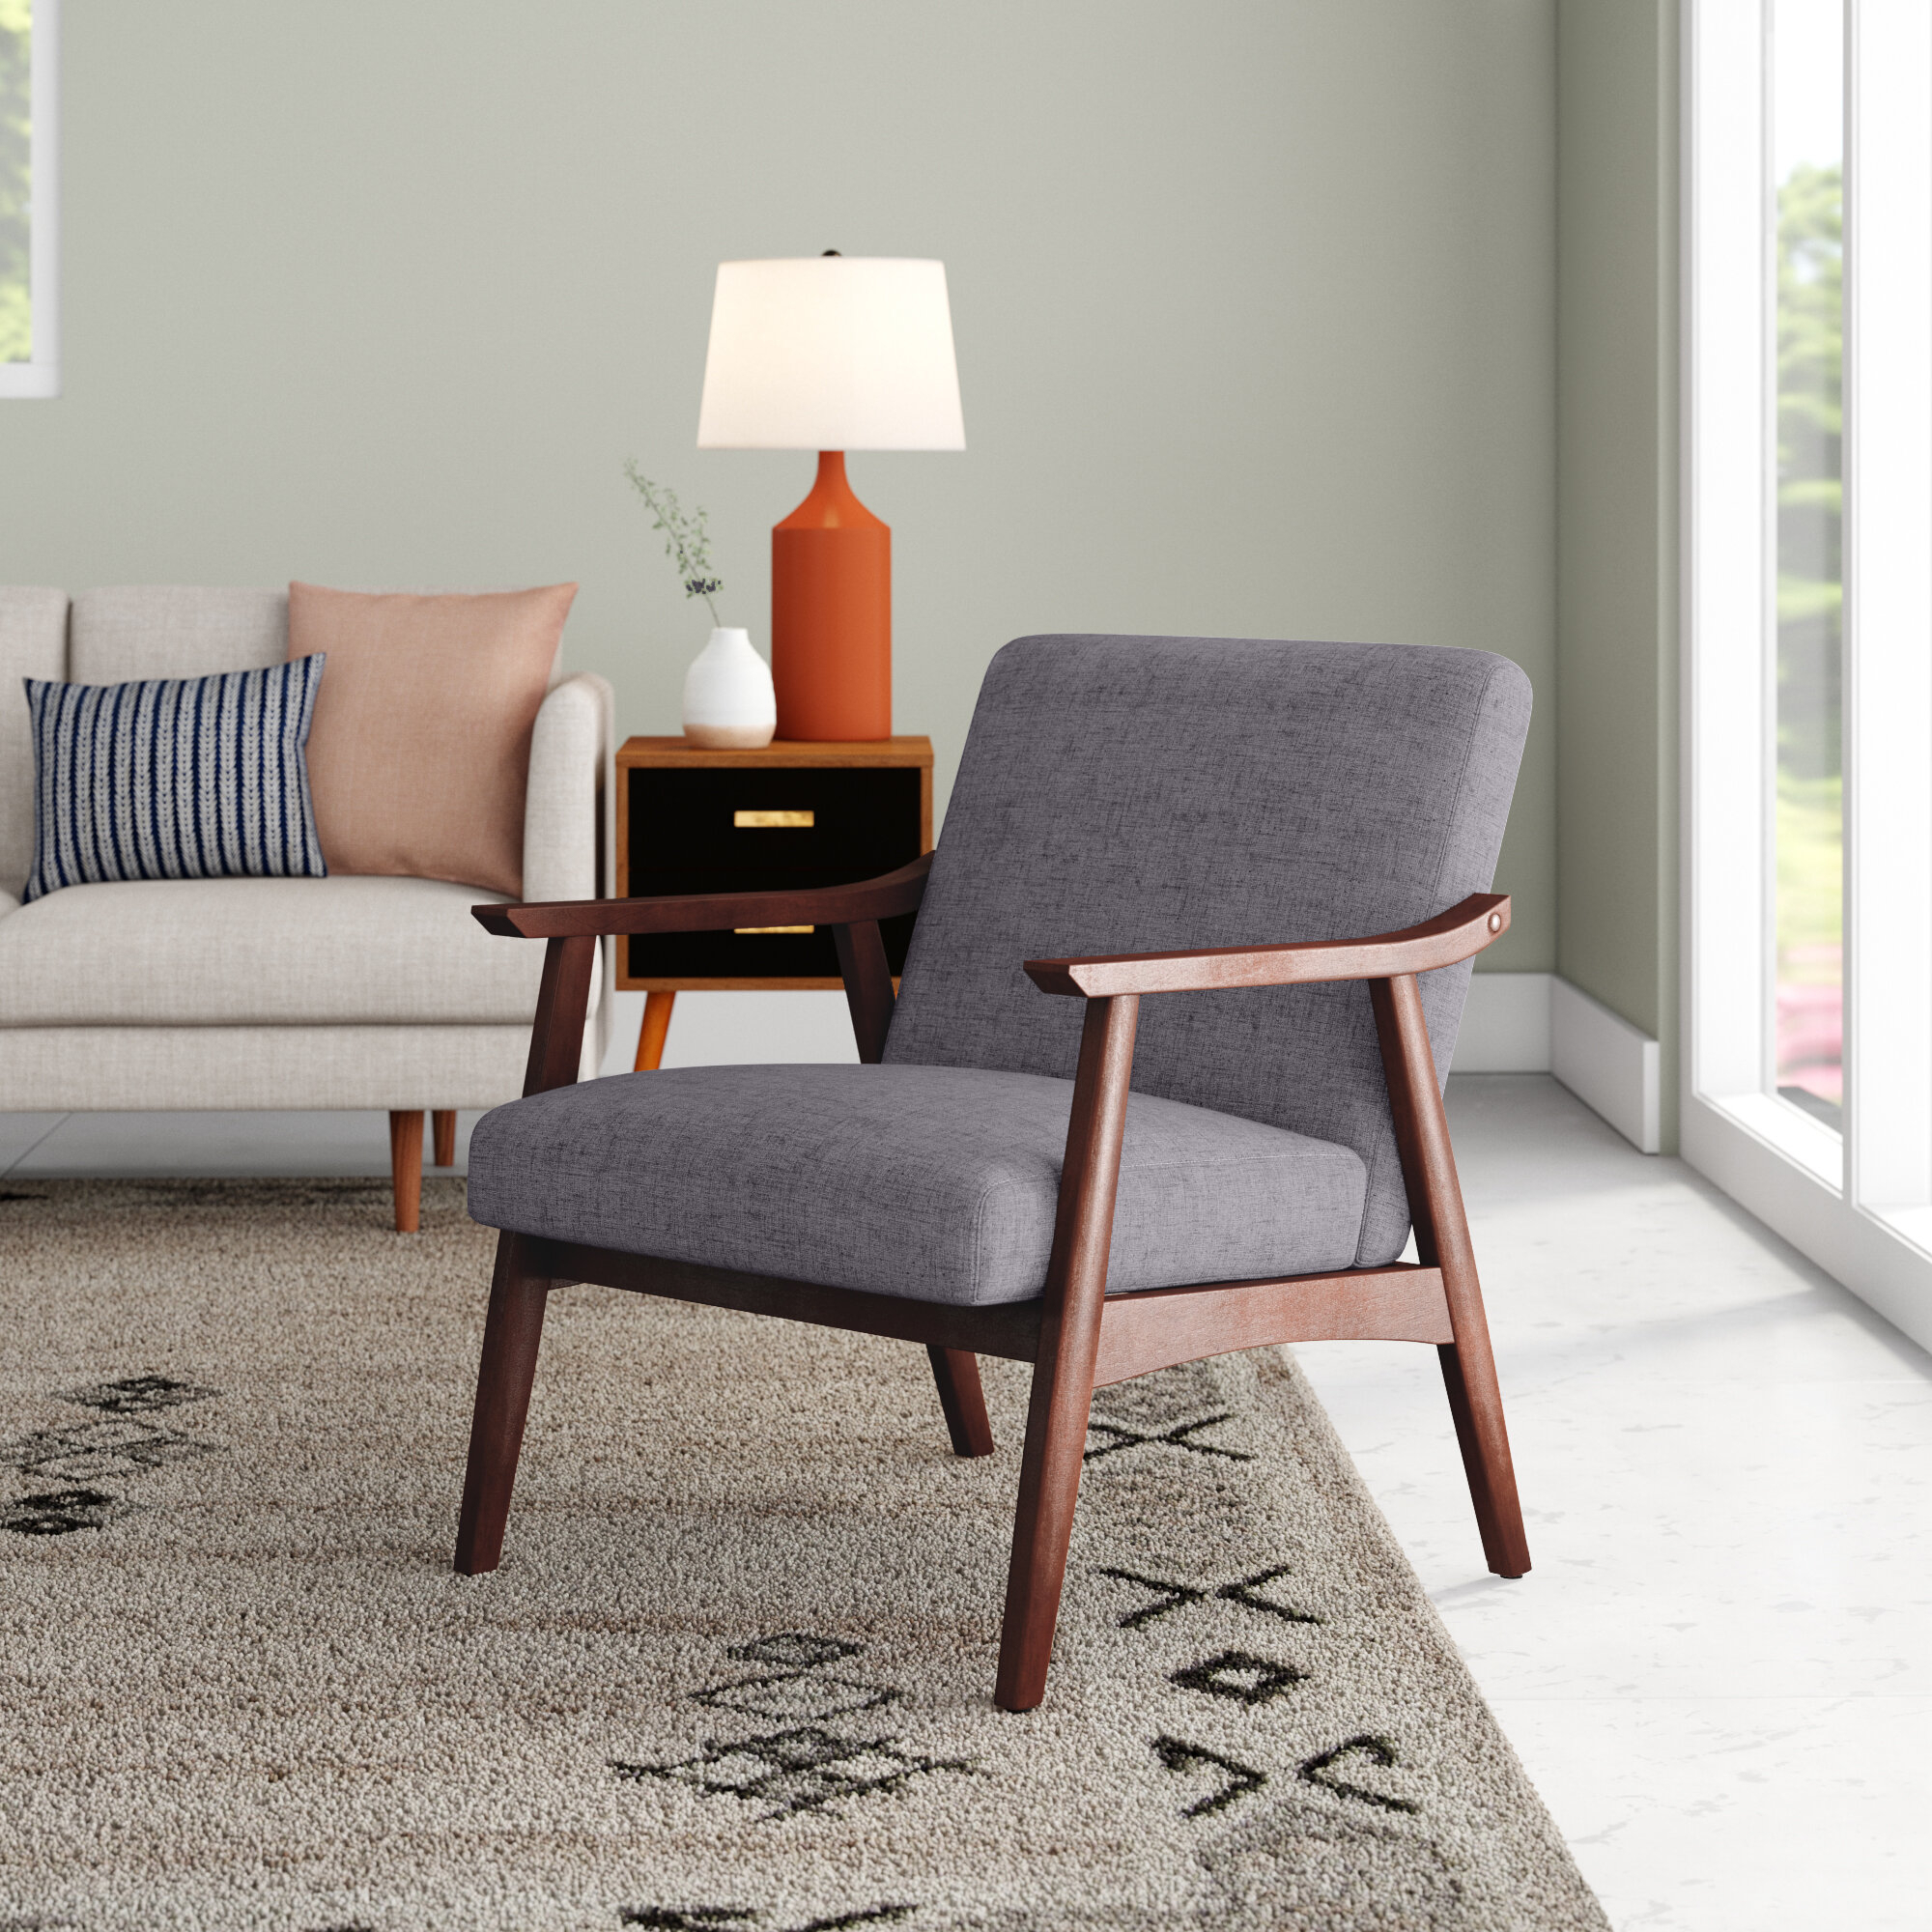 Armchairs | Wayfair Inside Oglesby Armchairs (View 14 of 15)